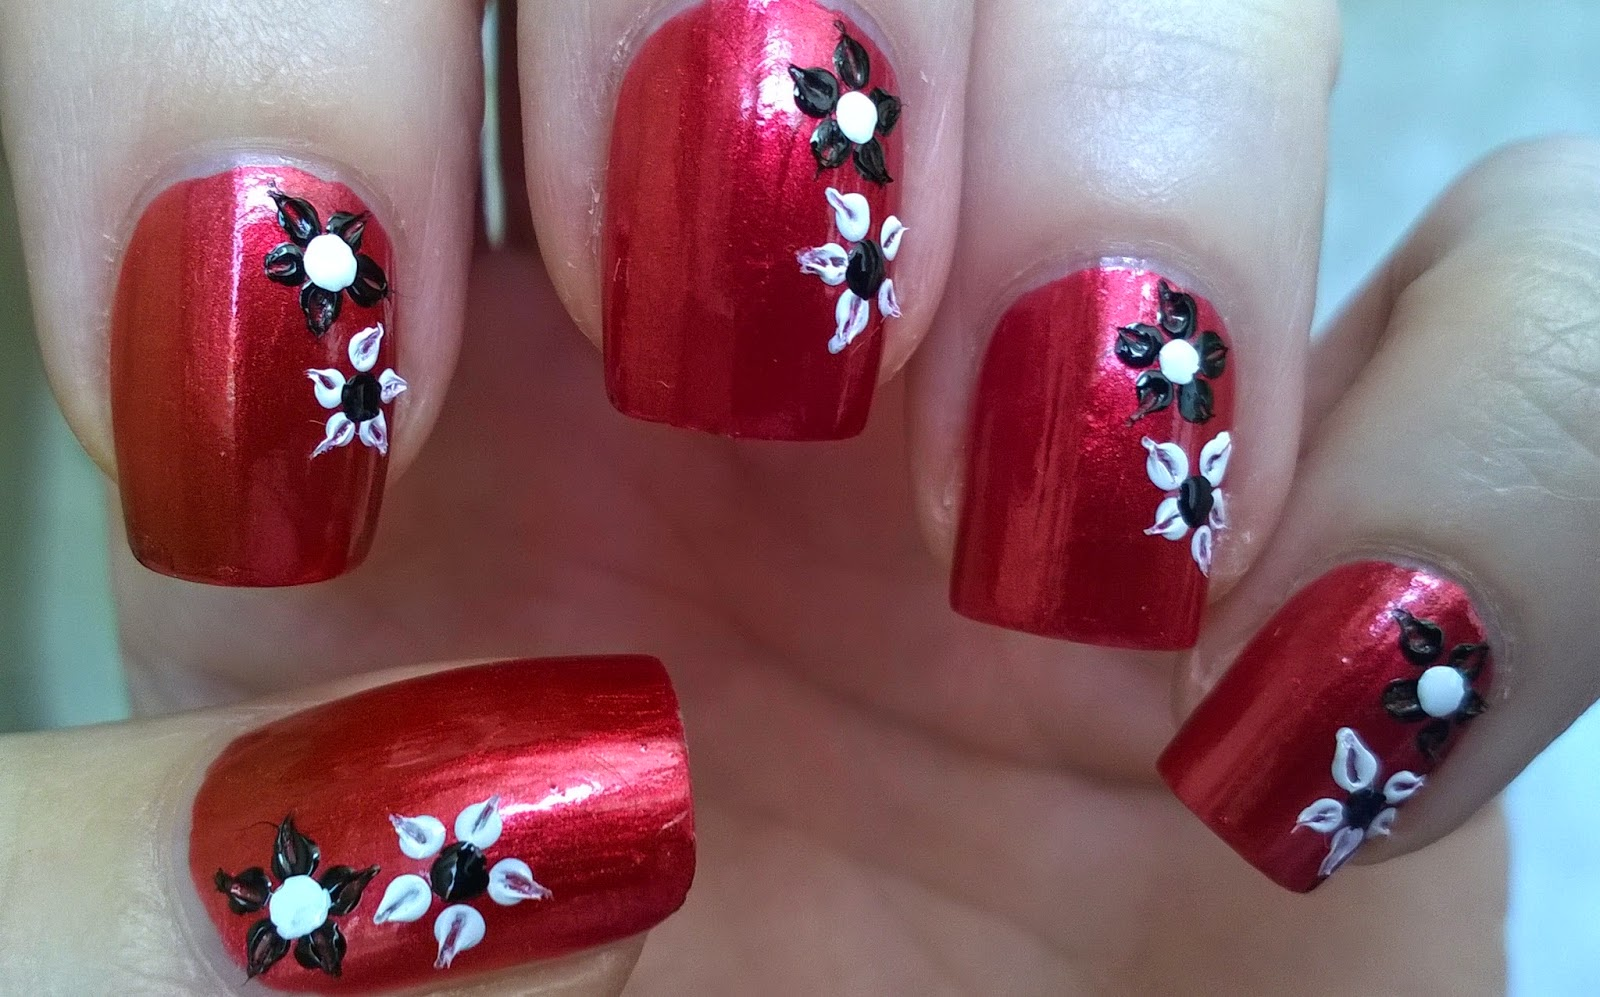 Life world women dark red floral nail art by using toothpick dark red floral nail art by using toothpick dotting tool prinsesfo Images